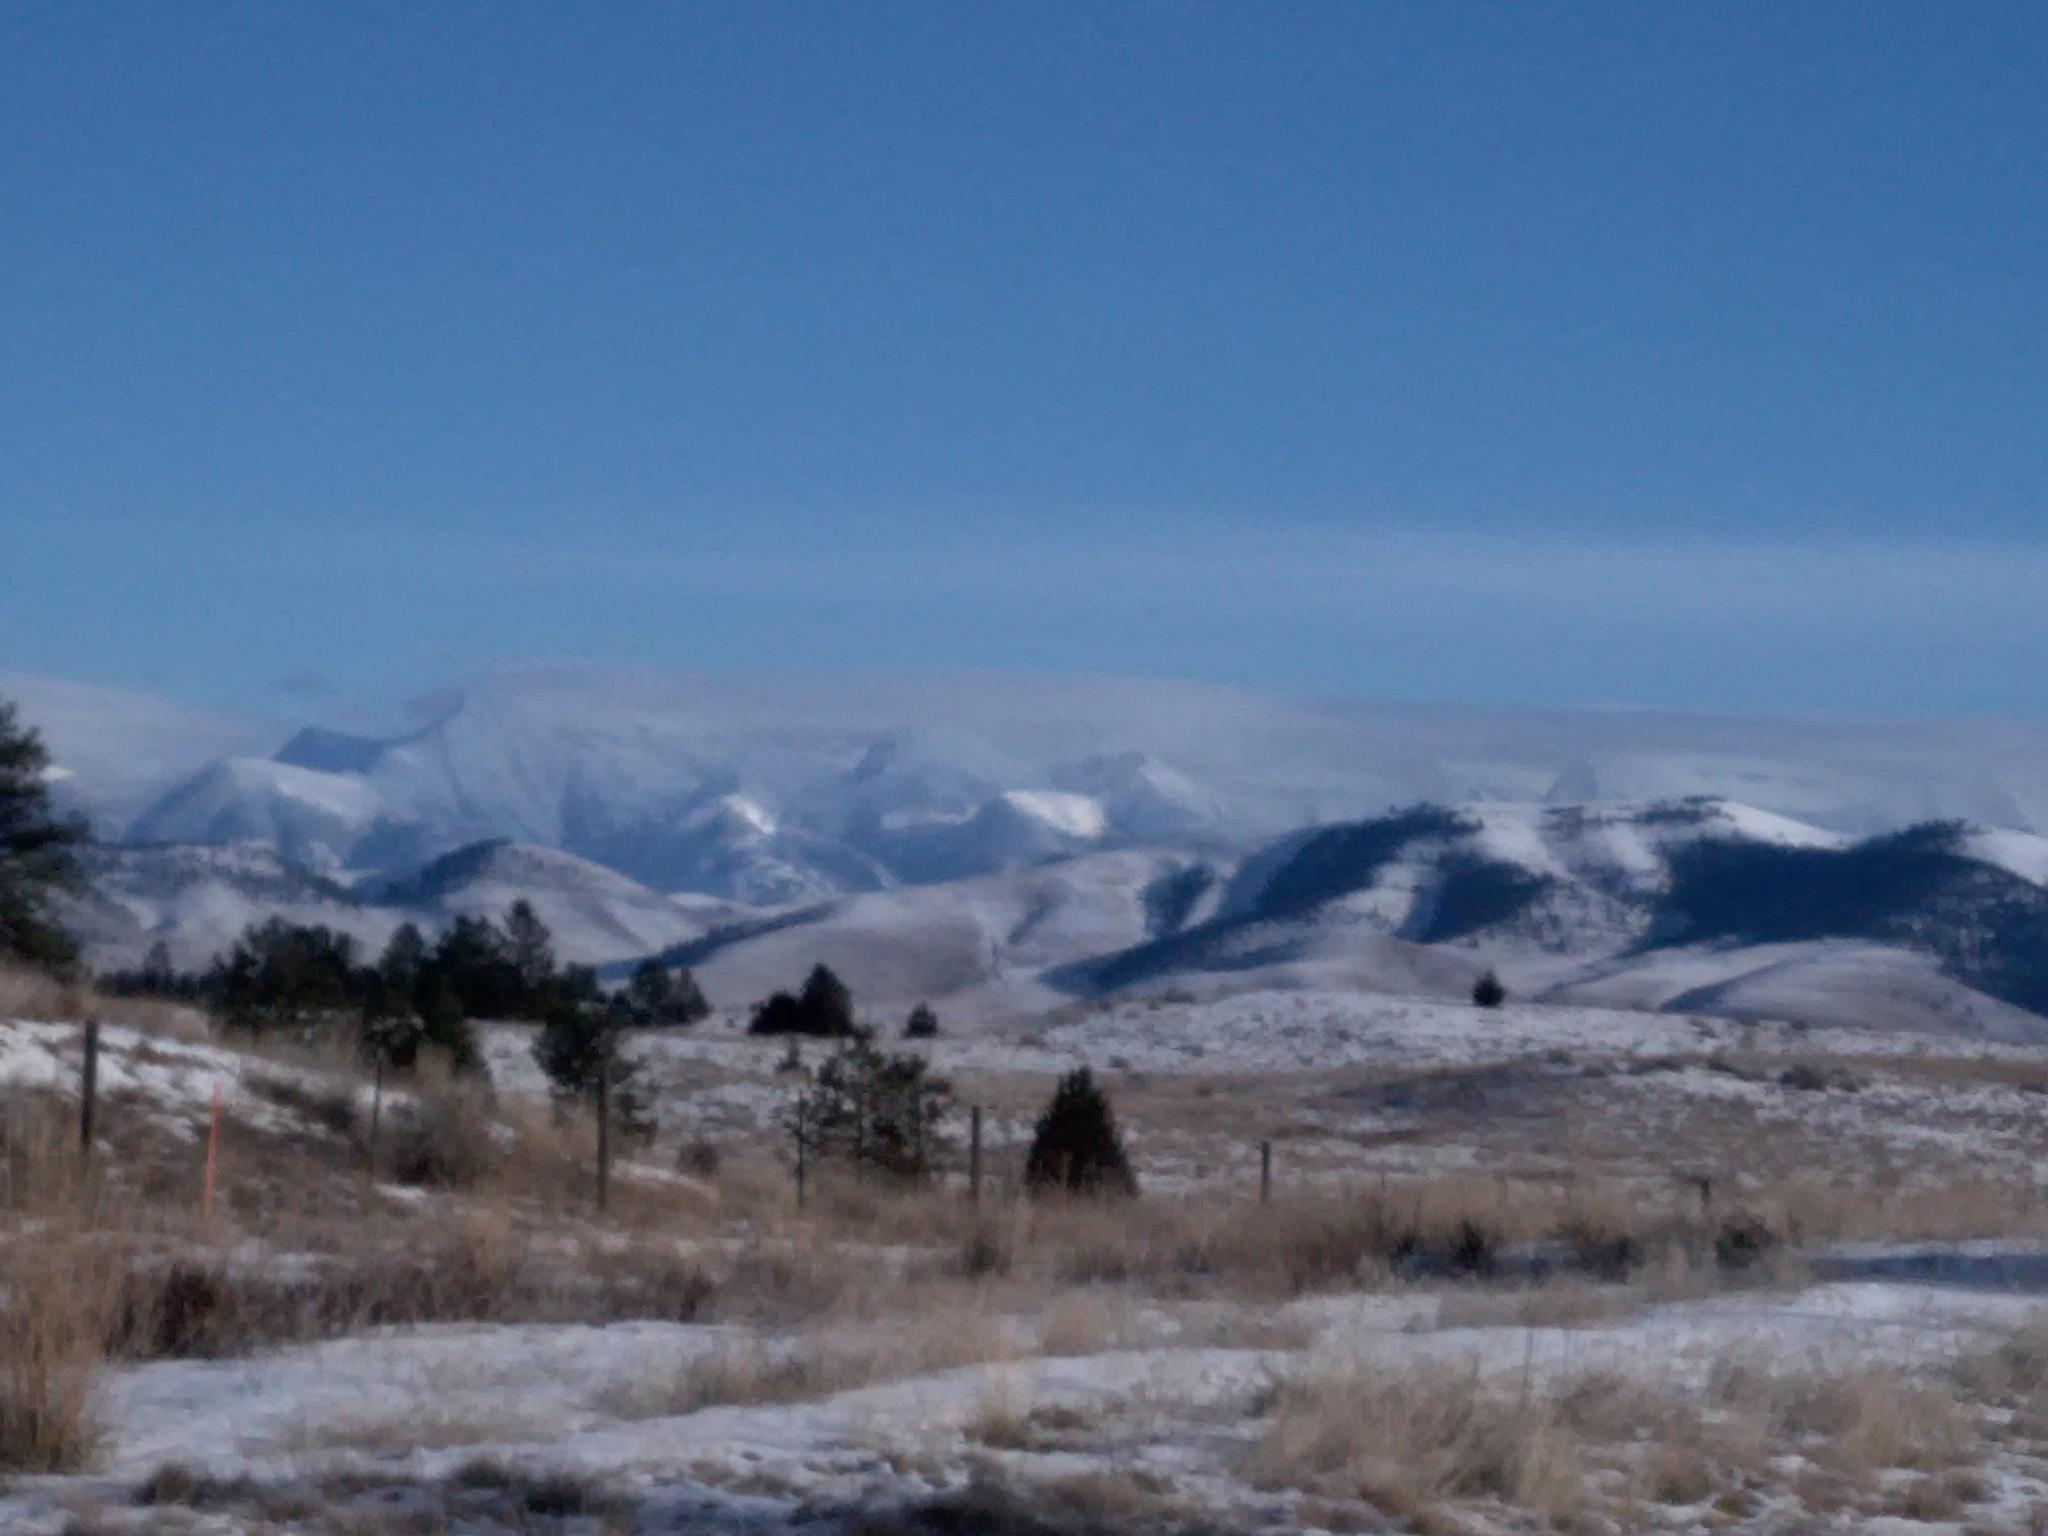 Mountain view. Somewhere between Paradise and Missoula, MT